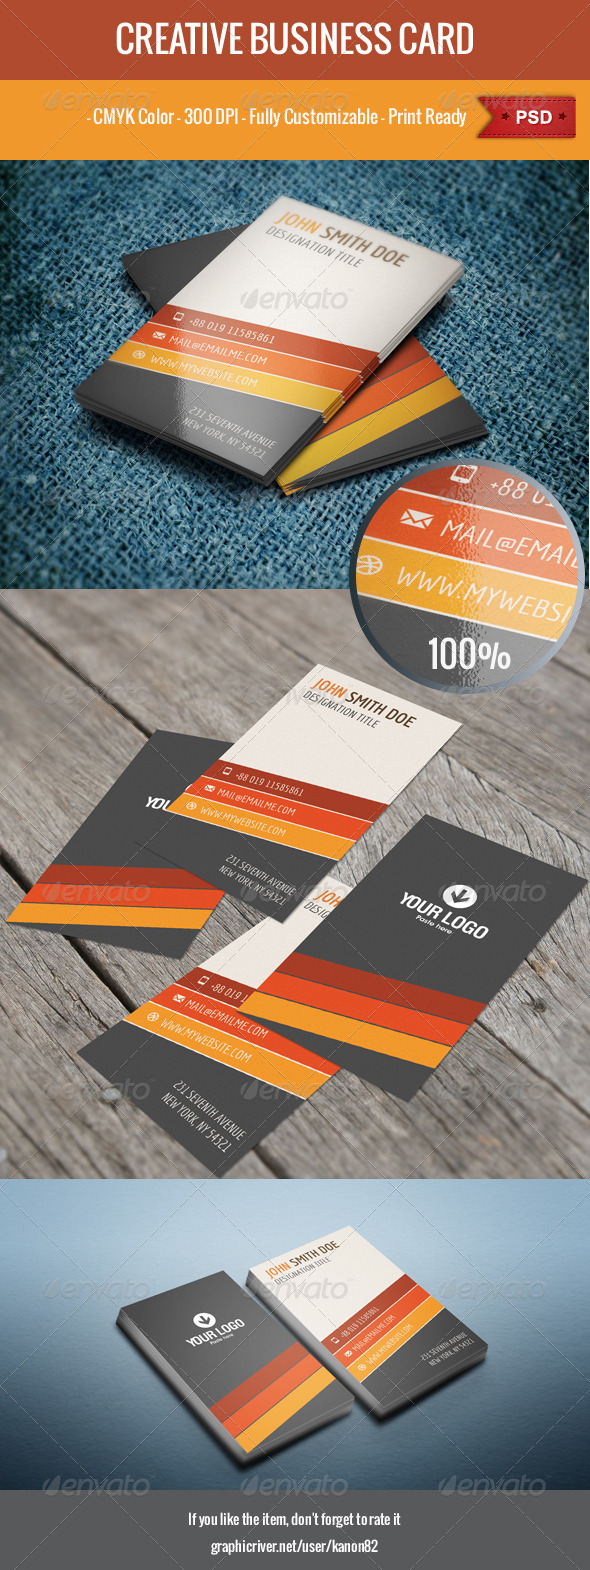 Vertical Business Card - Creative Business Cards